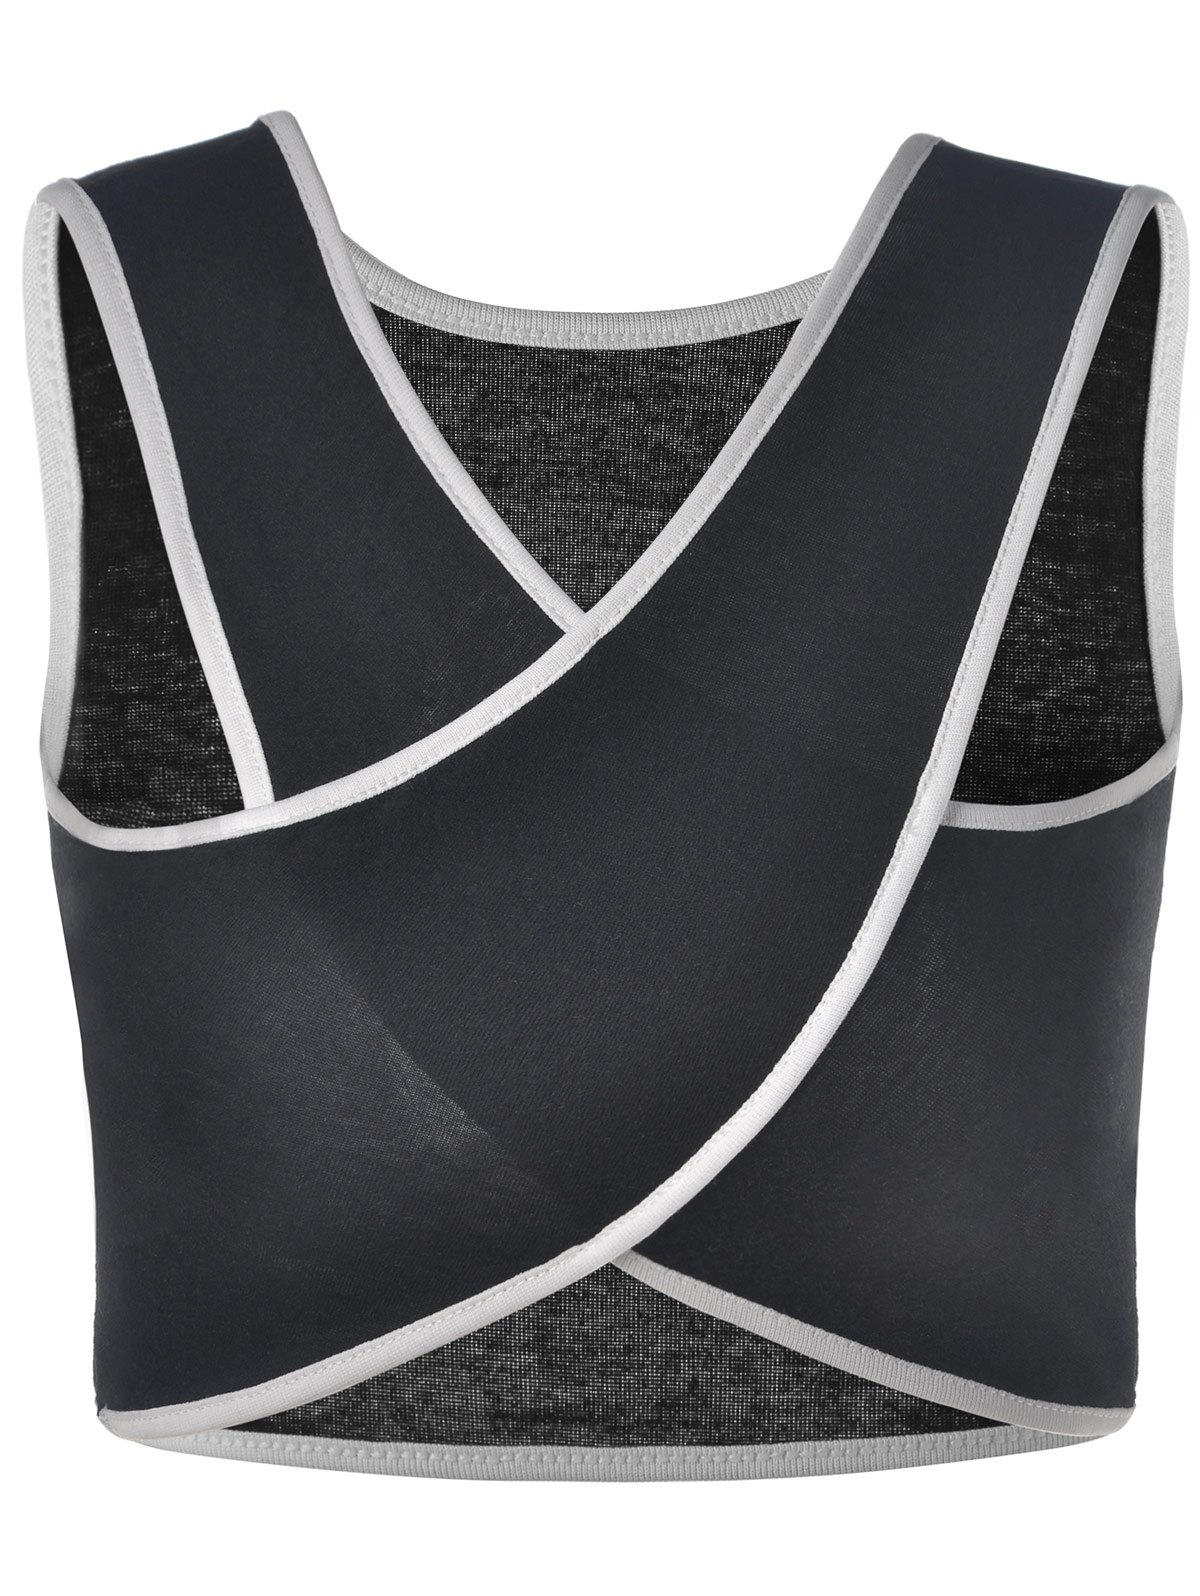 Casual Women's V-Neck Overlapping Sleeveless Crop Top - BLACK ONE SIZE(FIT SIZE XS TO M)